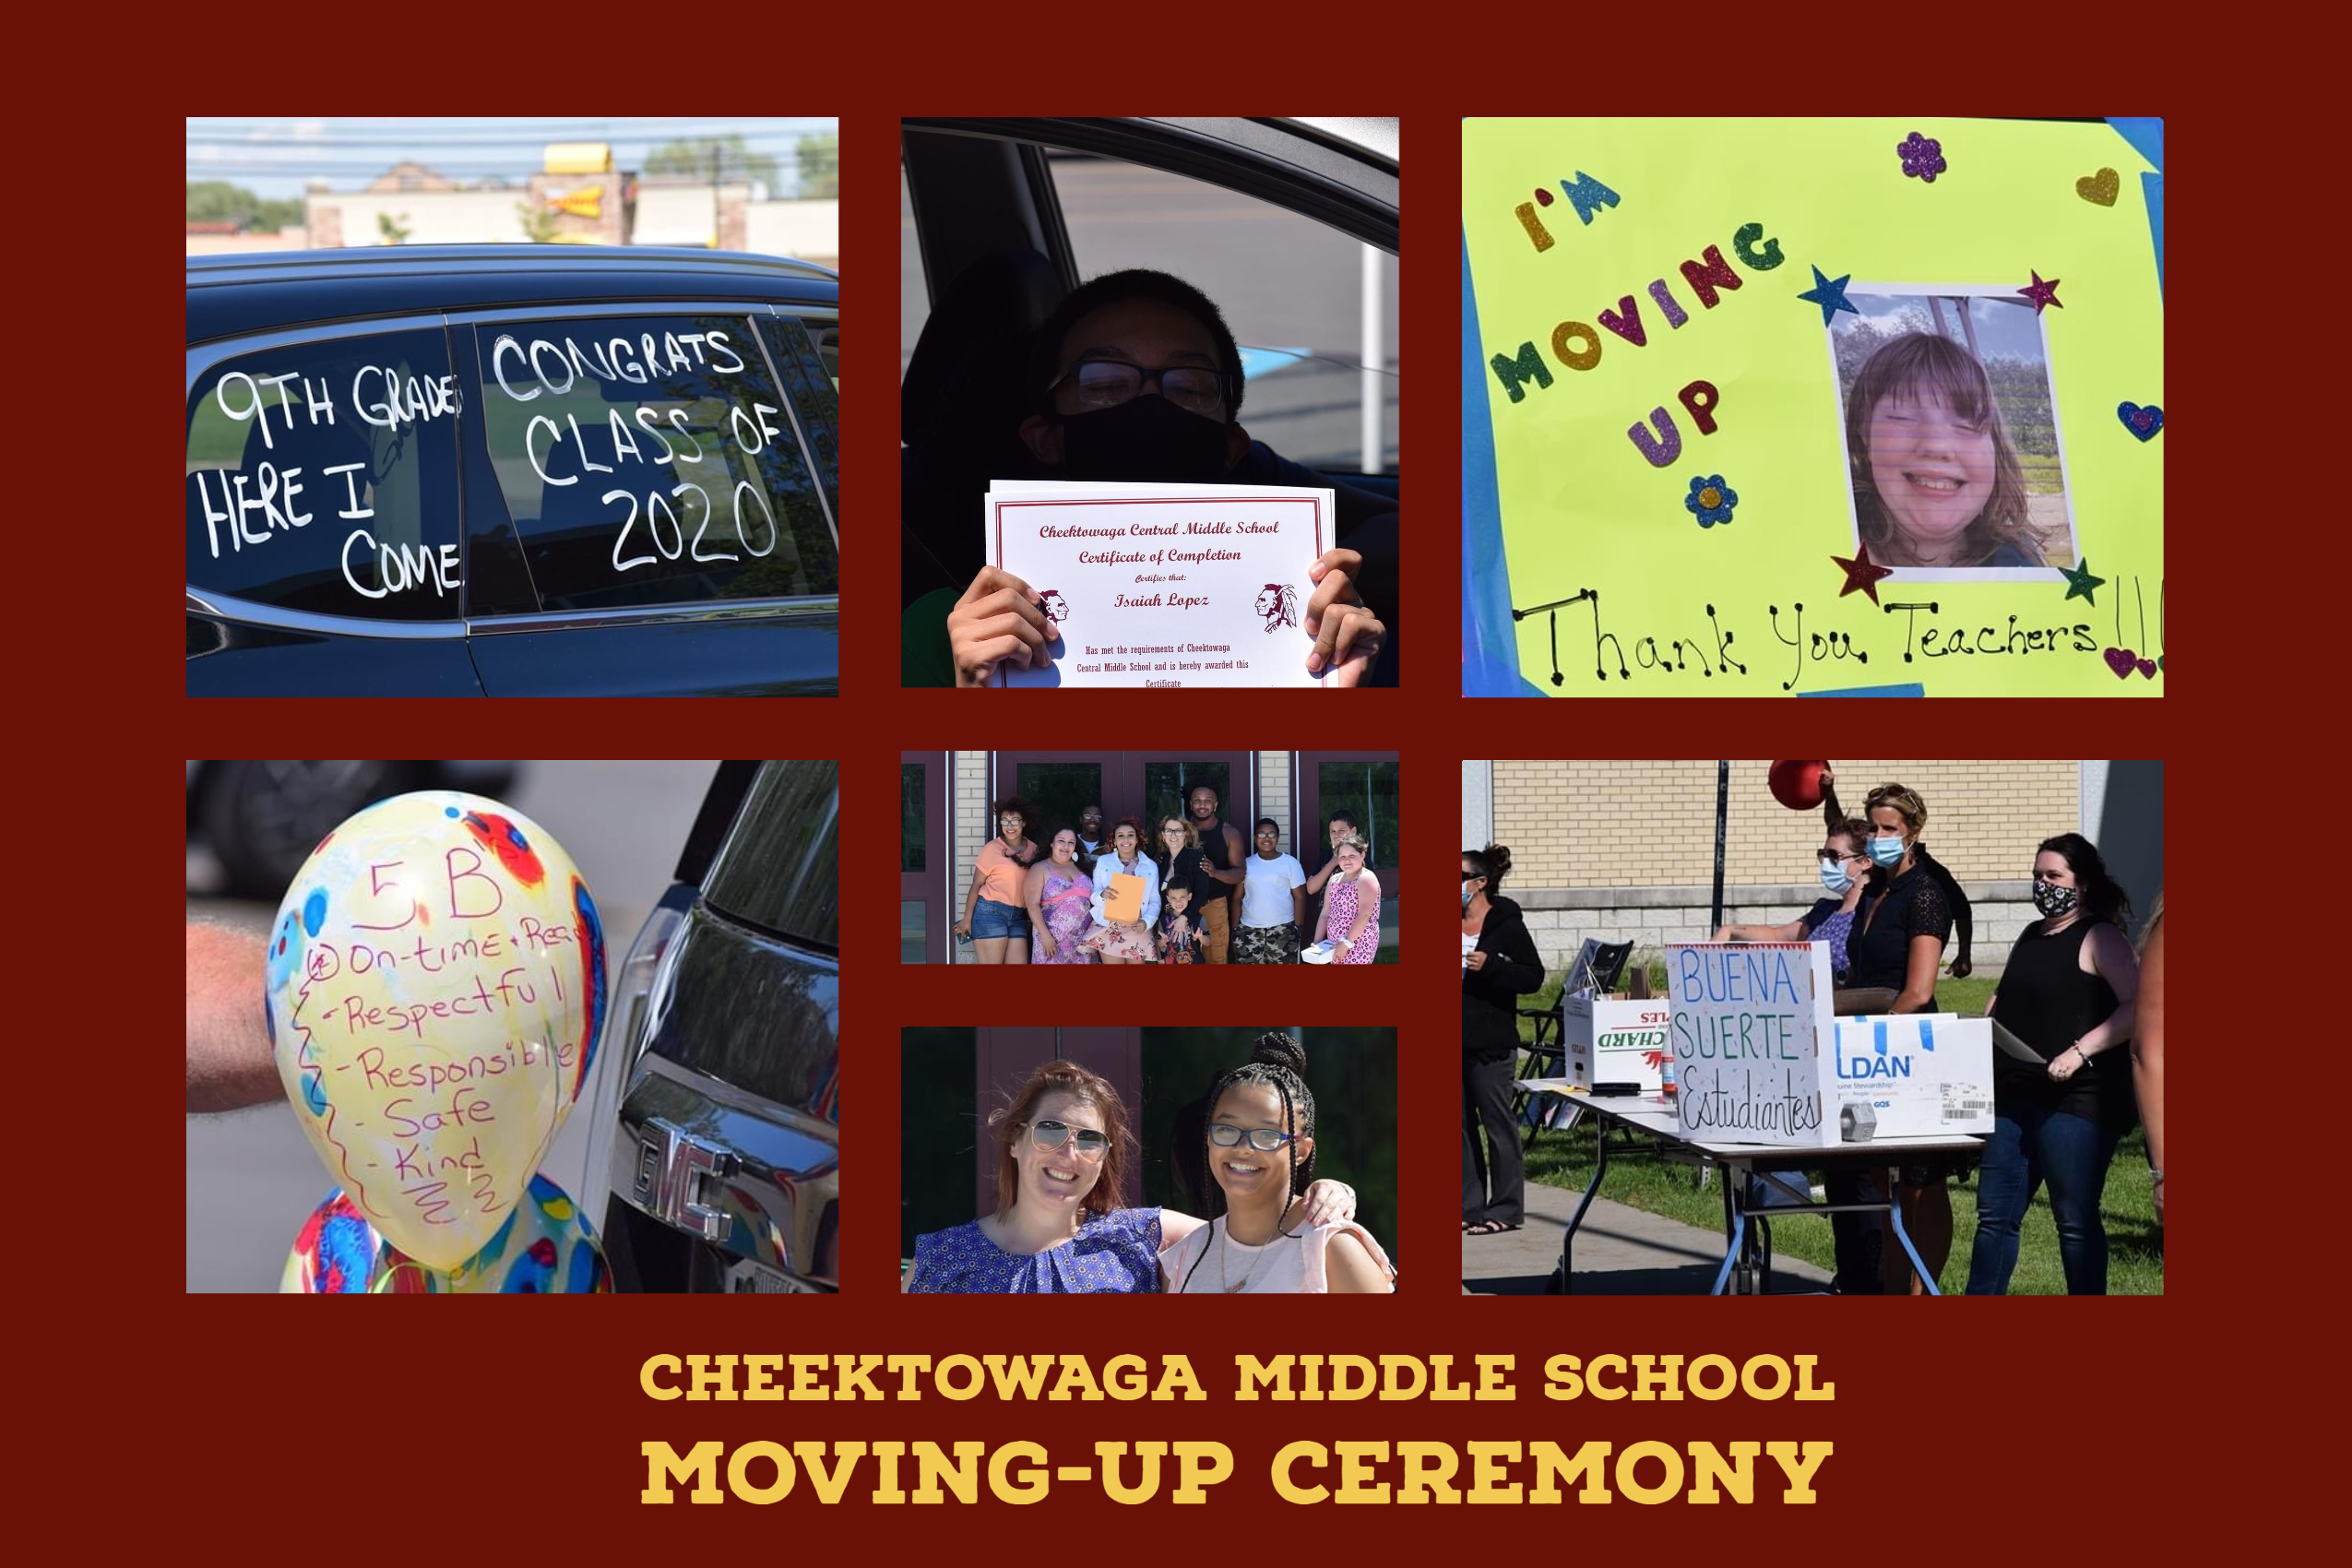 Cheektowaga Middle School moving-up ceremony picture montage